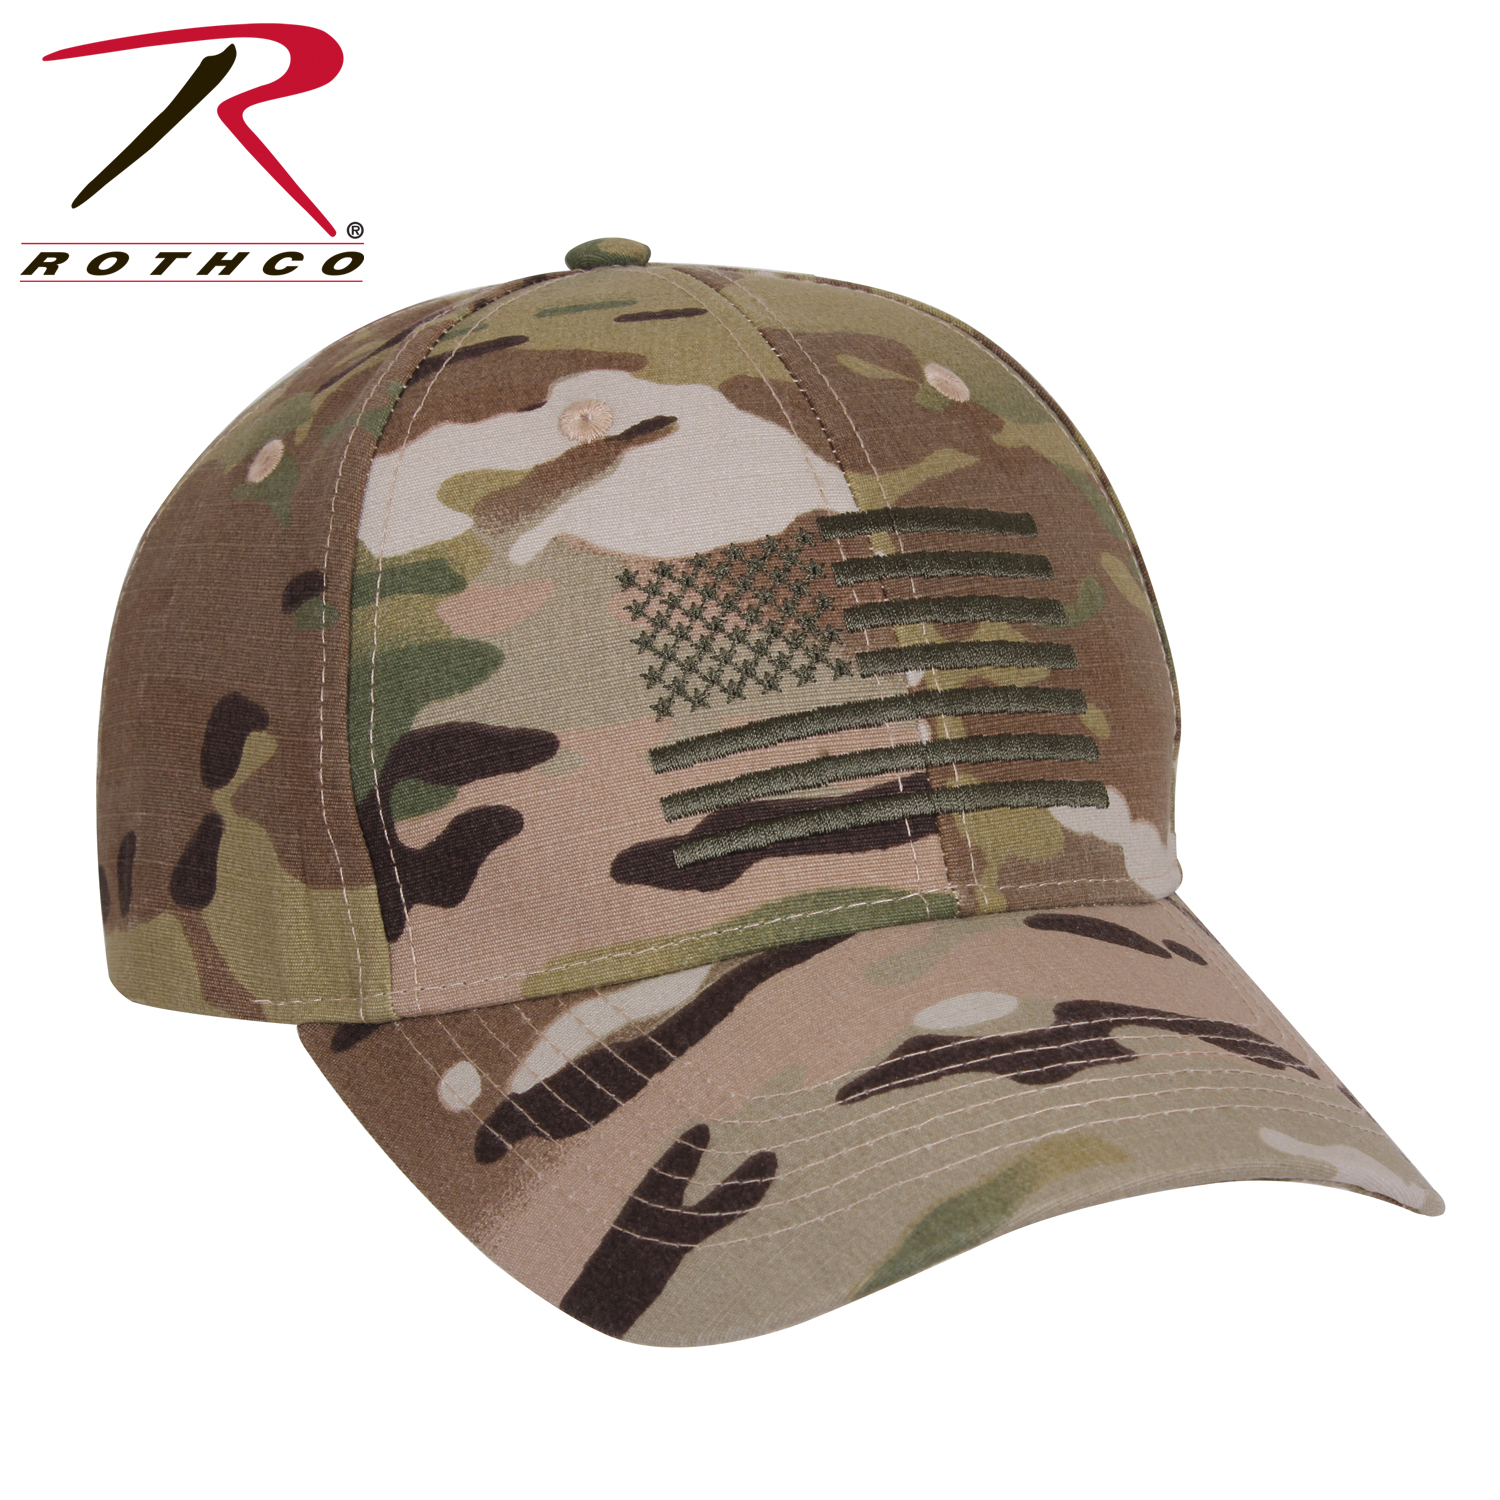 Rothco Low Profile Cap With US Flag 644b5ddb257